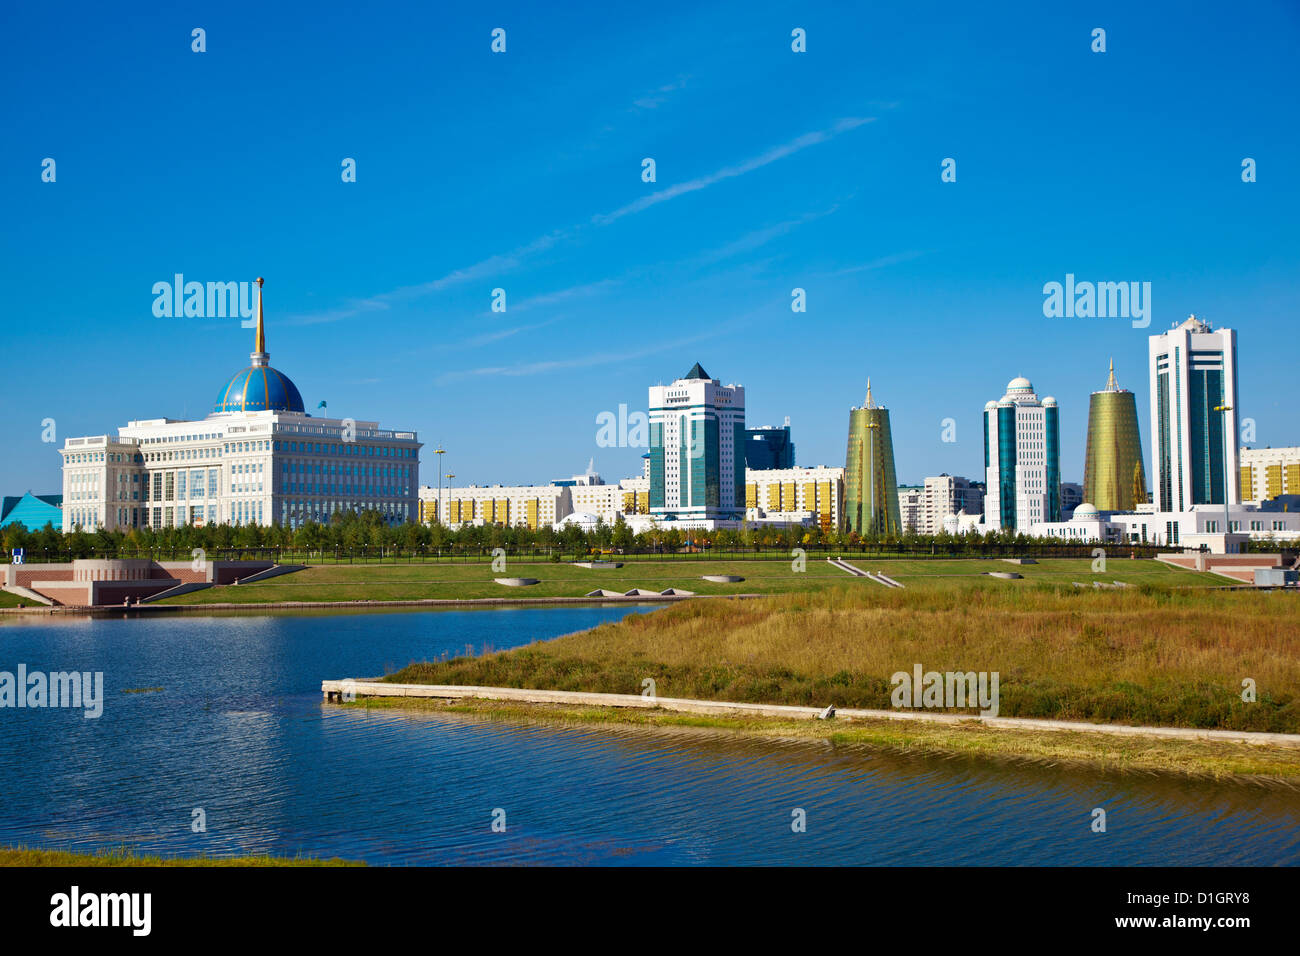 View of city, Astana, Kazakhstan, Central Asia, Asia - Stock Image